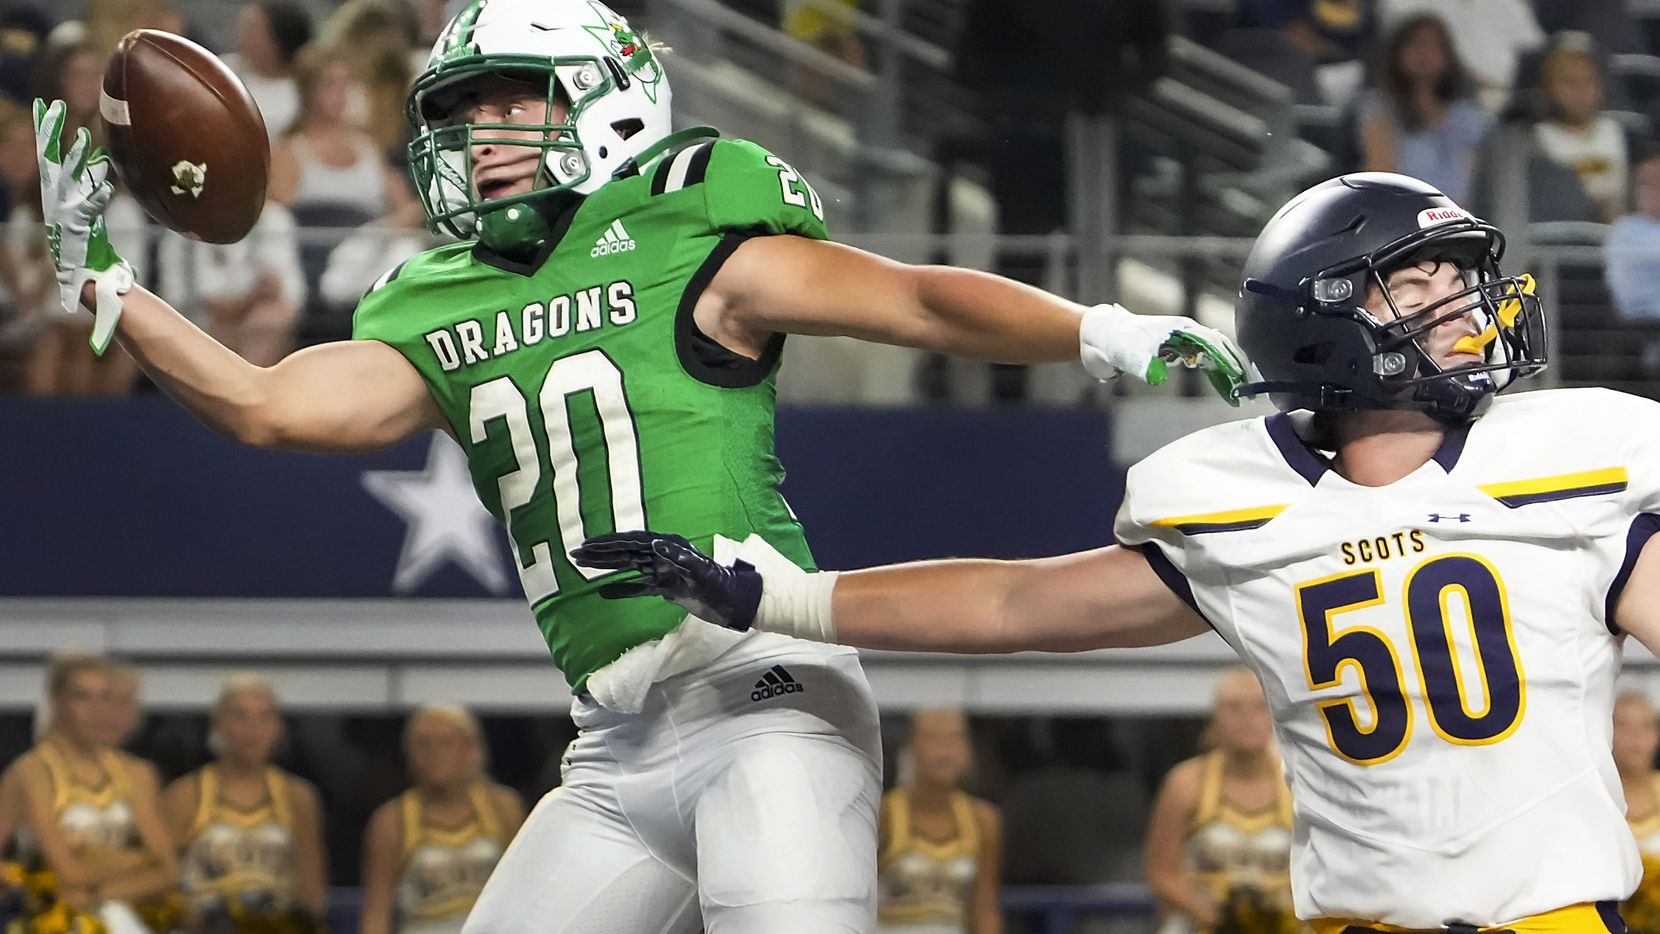 Southlake Carroll running back James Lehman (20) makes a one-handed catch for a touchdown as Highland Park's Thomas Oliver (50) defends during the first half of a high school football game at AT&T Stadium on Thursday, Aug. 26, 2021, in Arlington.